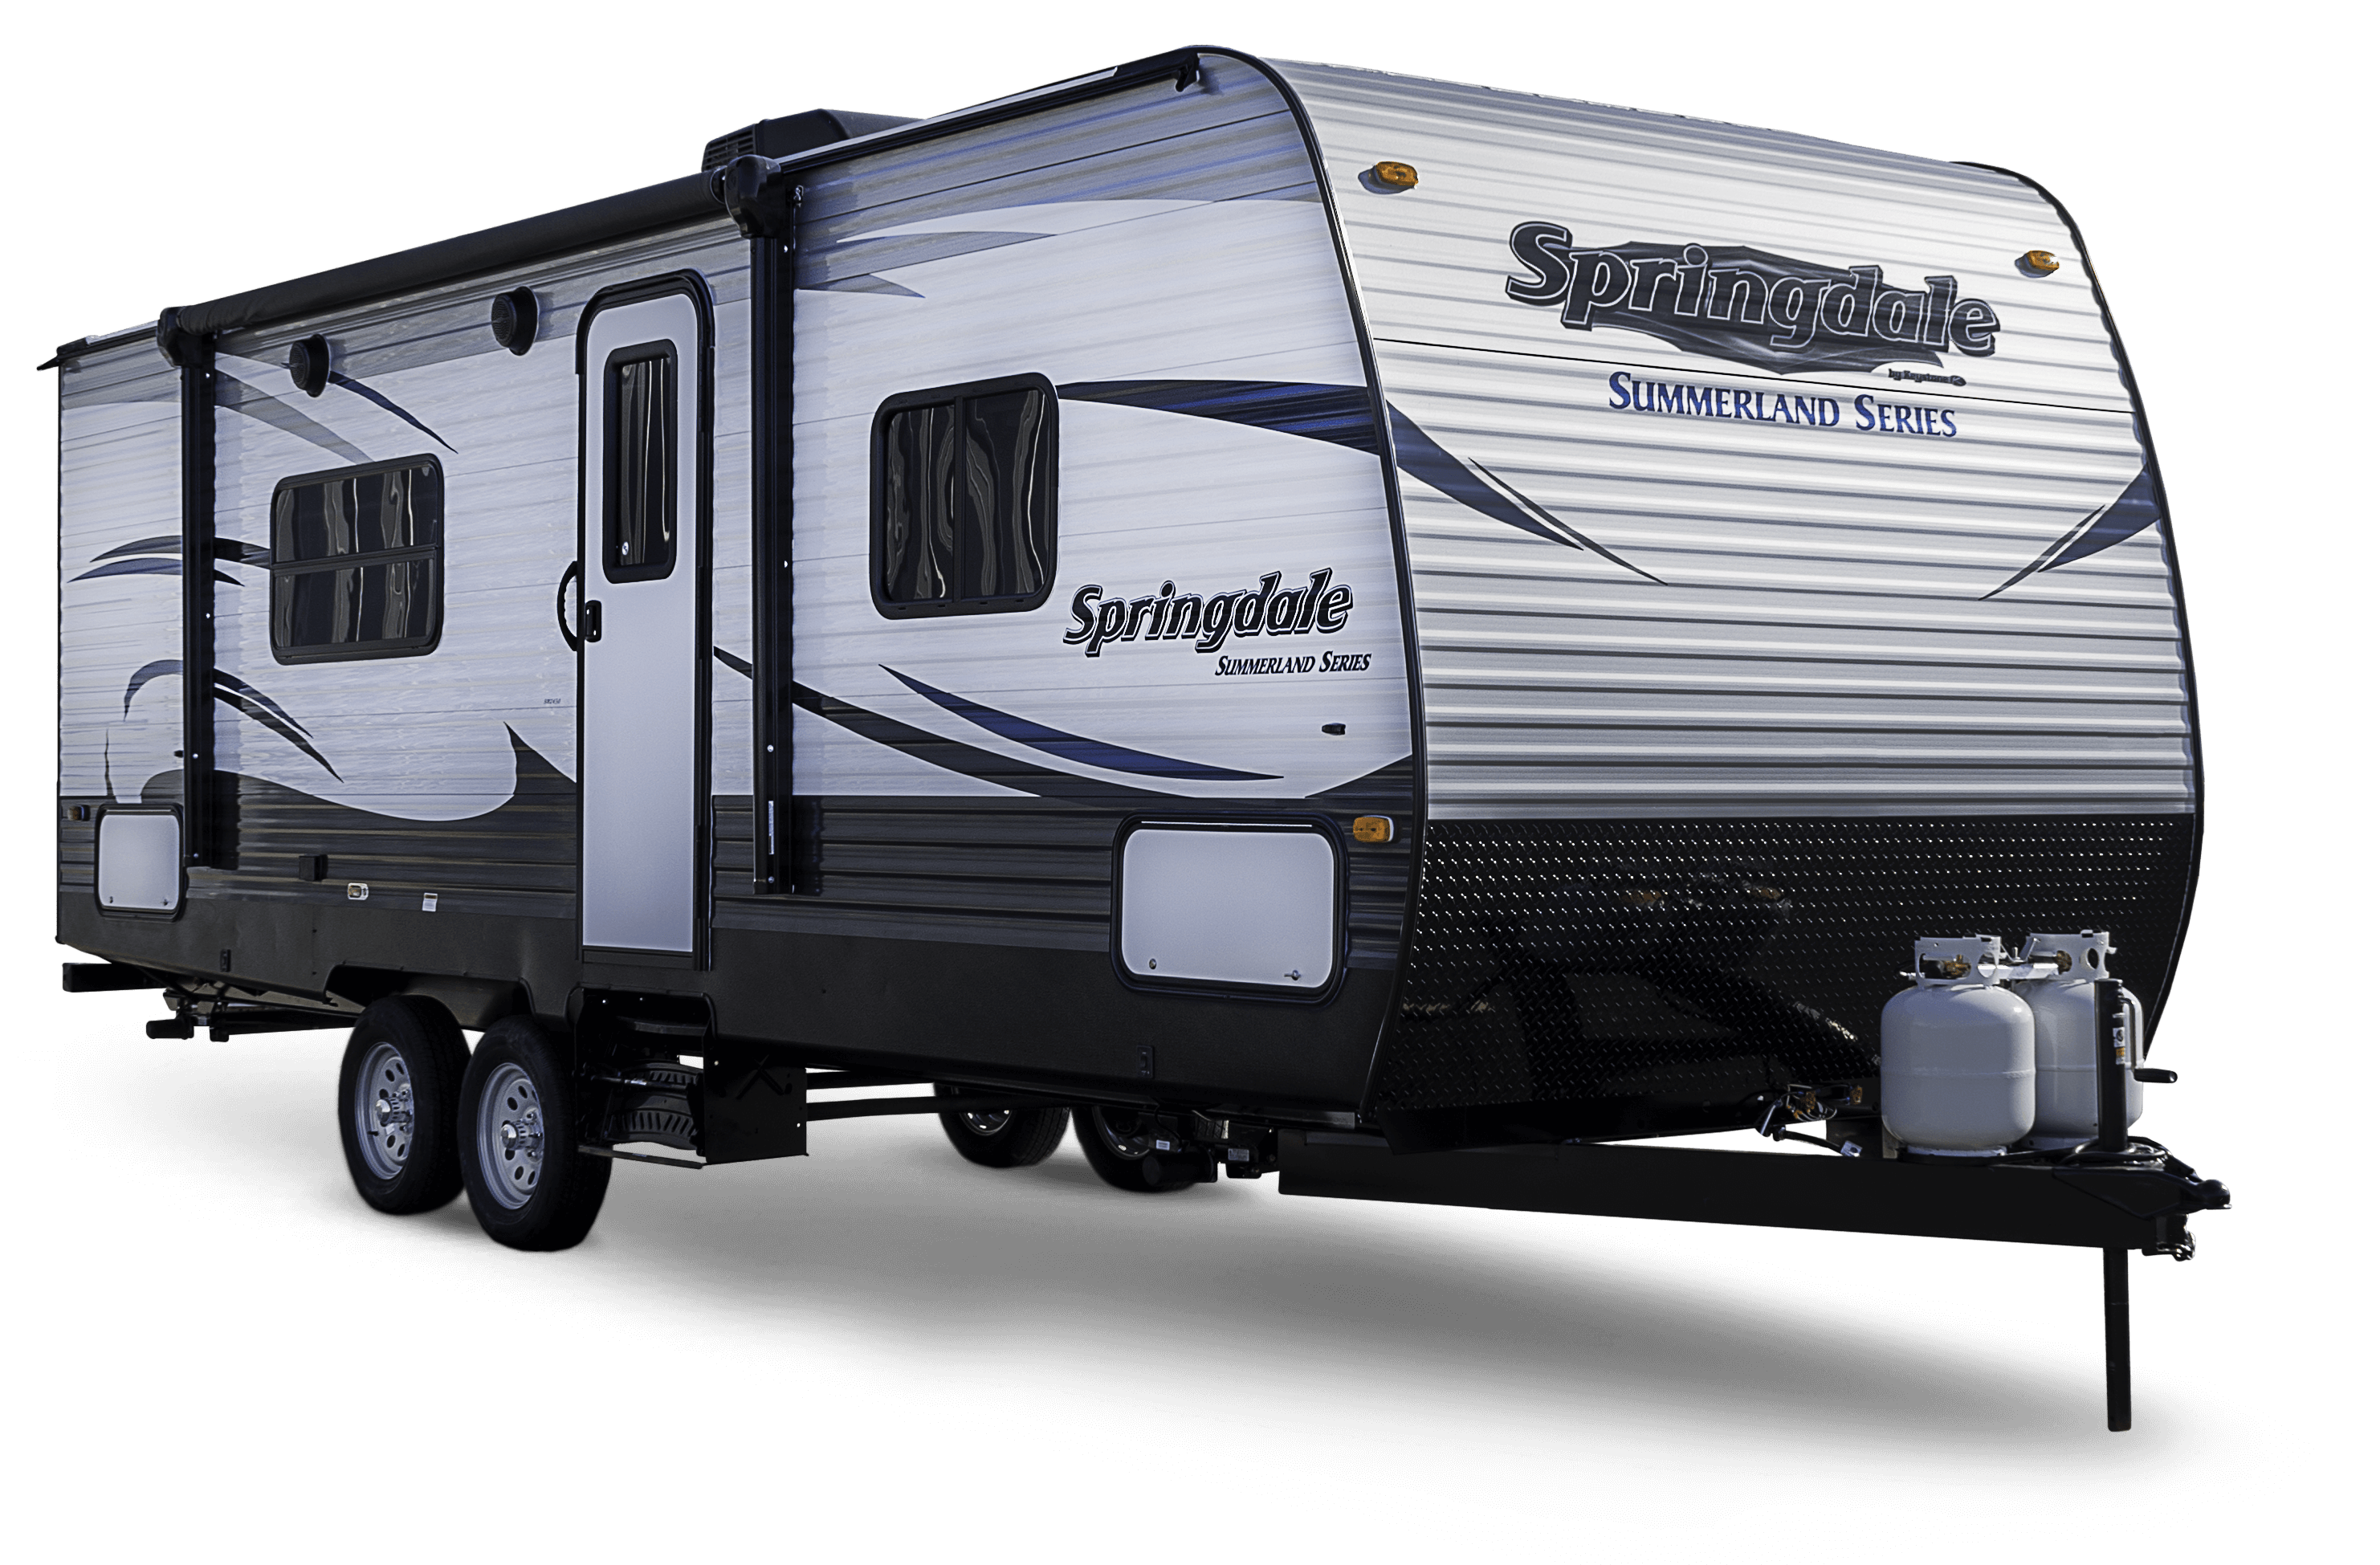 Rv Hall Of Fame >> Summerland Travel Trailer